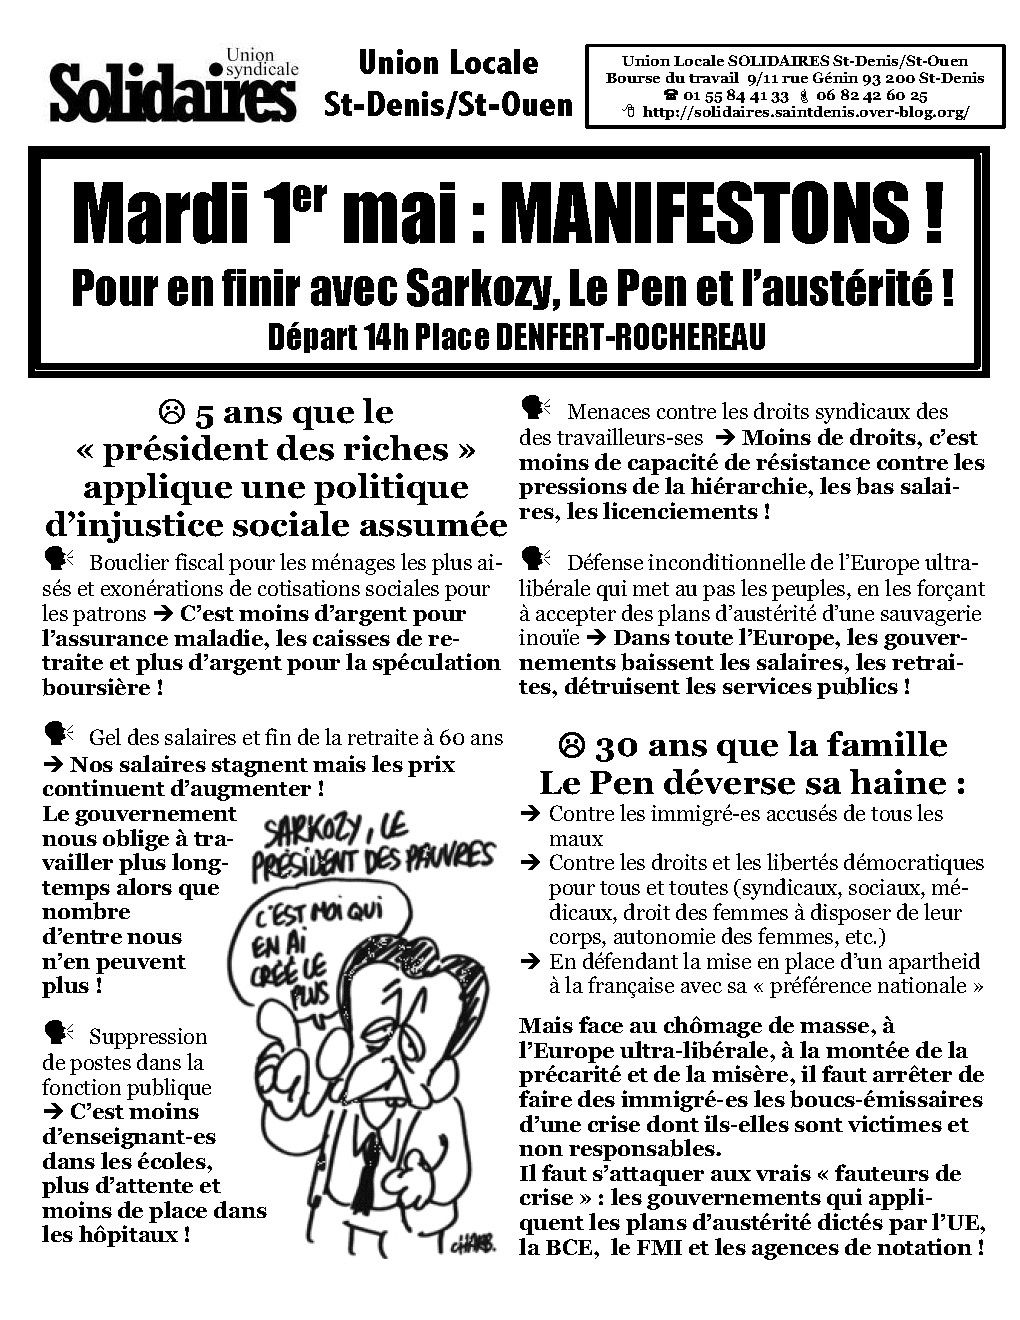 Tract-SOLIDAIRES-St-Denis-St-Ouen-1er-Mai-2012_Page_1.jpg